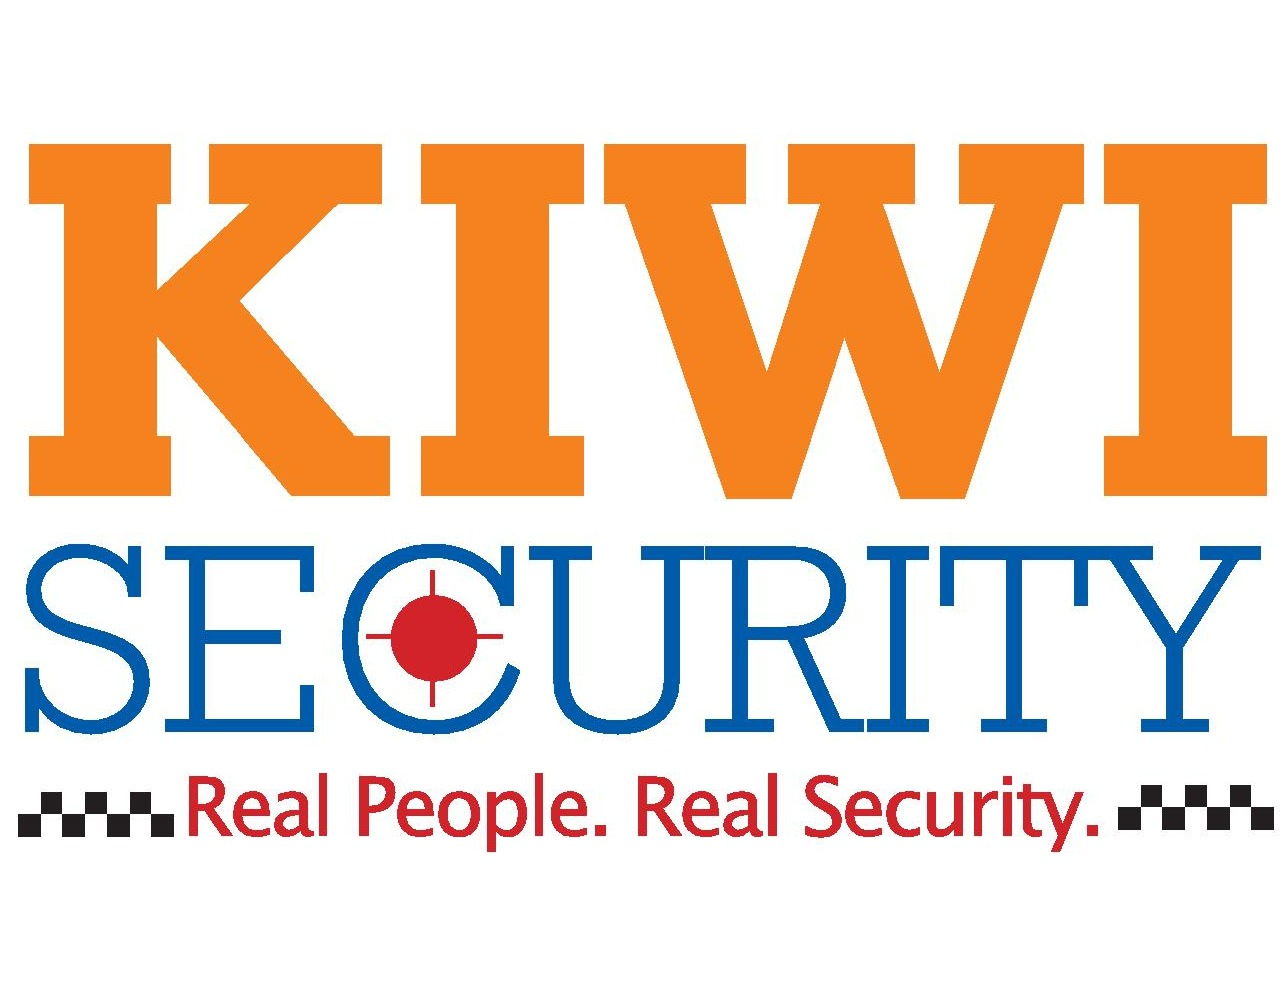 Kiwi Security